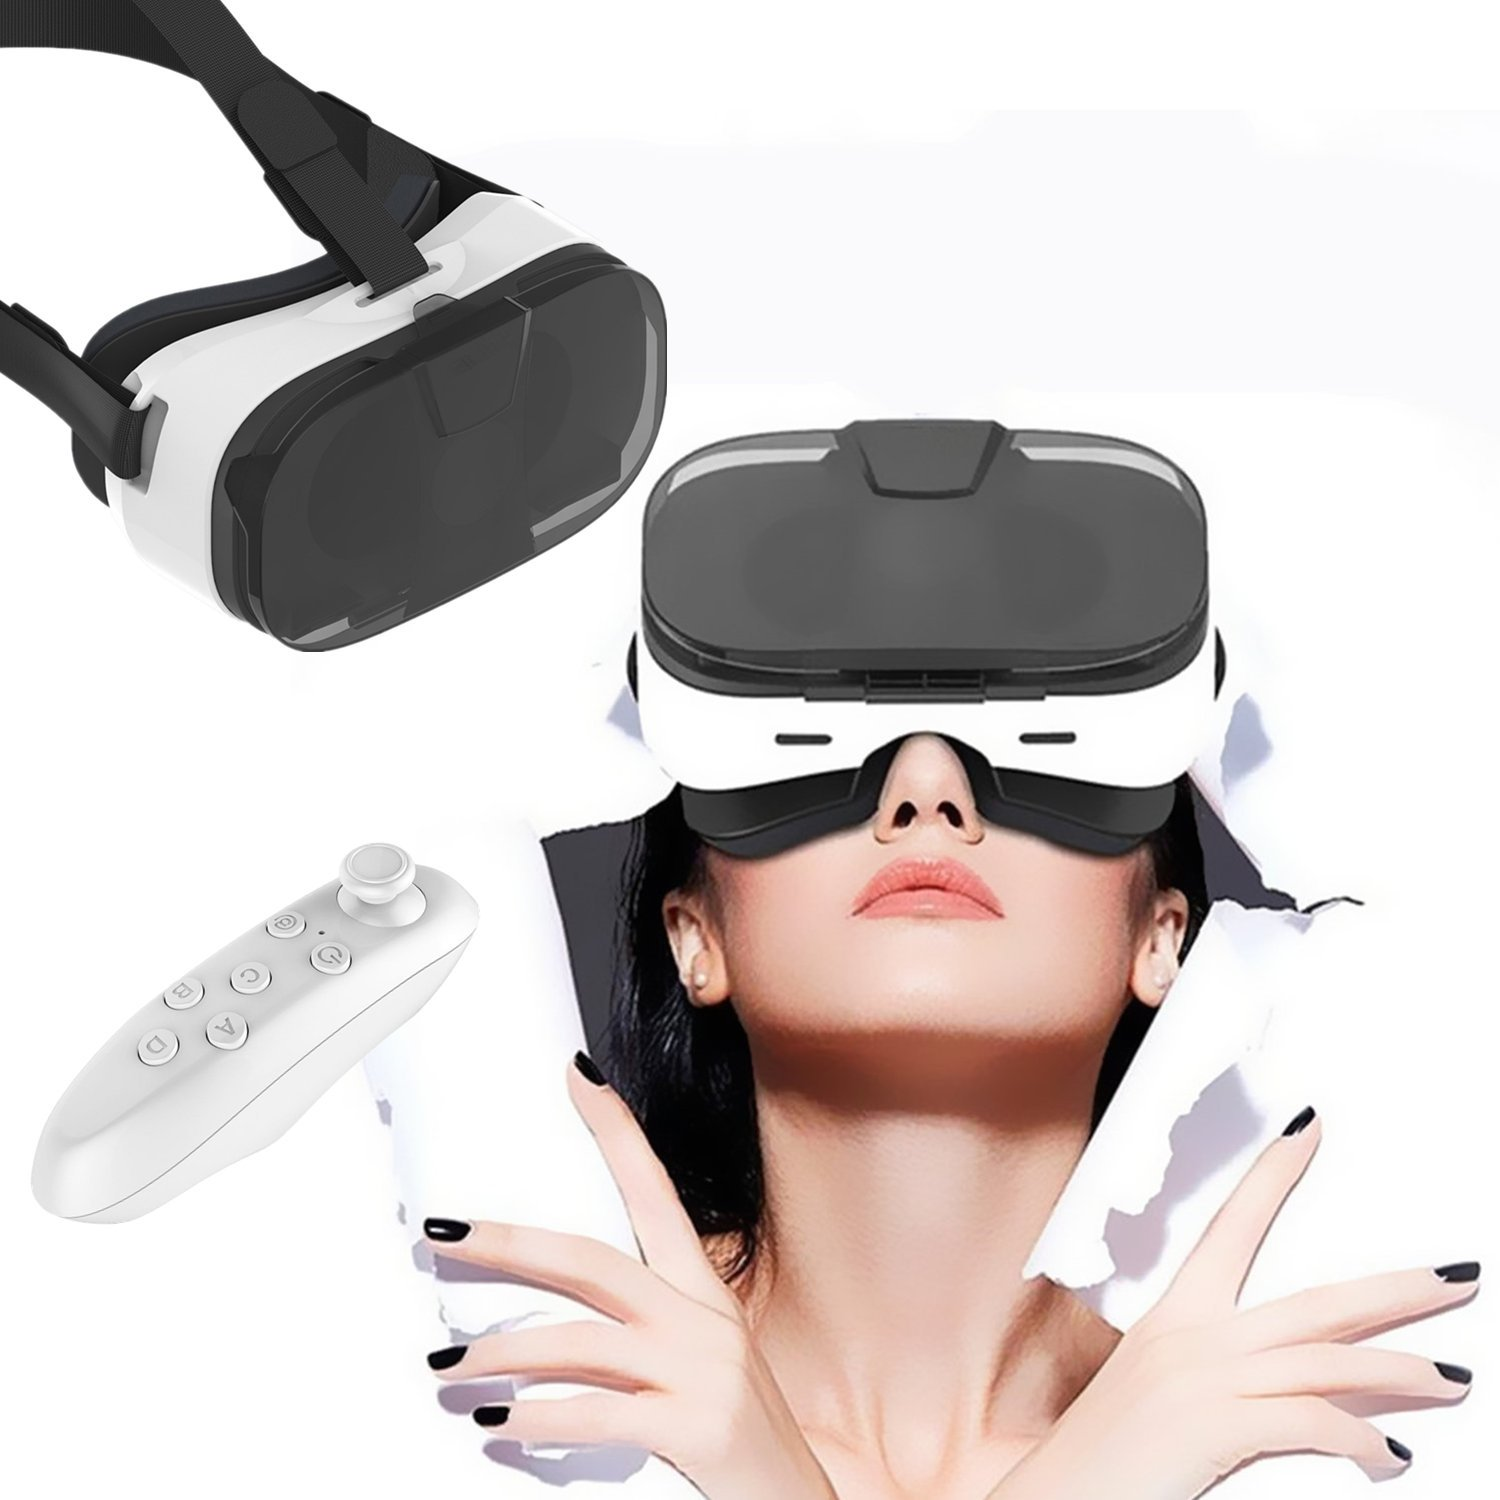 3D Virtual Reality Headset, VR Glasses/Headset with Remote & Half Transparent Cover for iPhone X 8 7 6S 6 Plus SE 5S, Samsung Galaxy S8 S7 S6 Edge& Other 4.0-6.5'' Cellphones by TSANGLIGHT